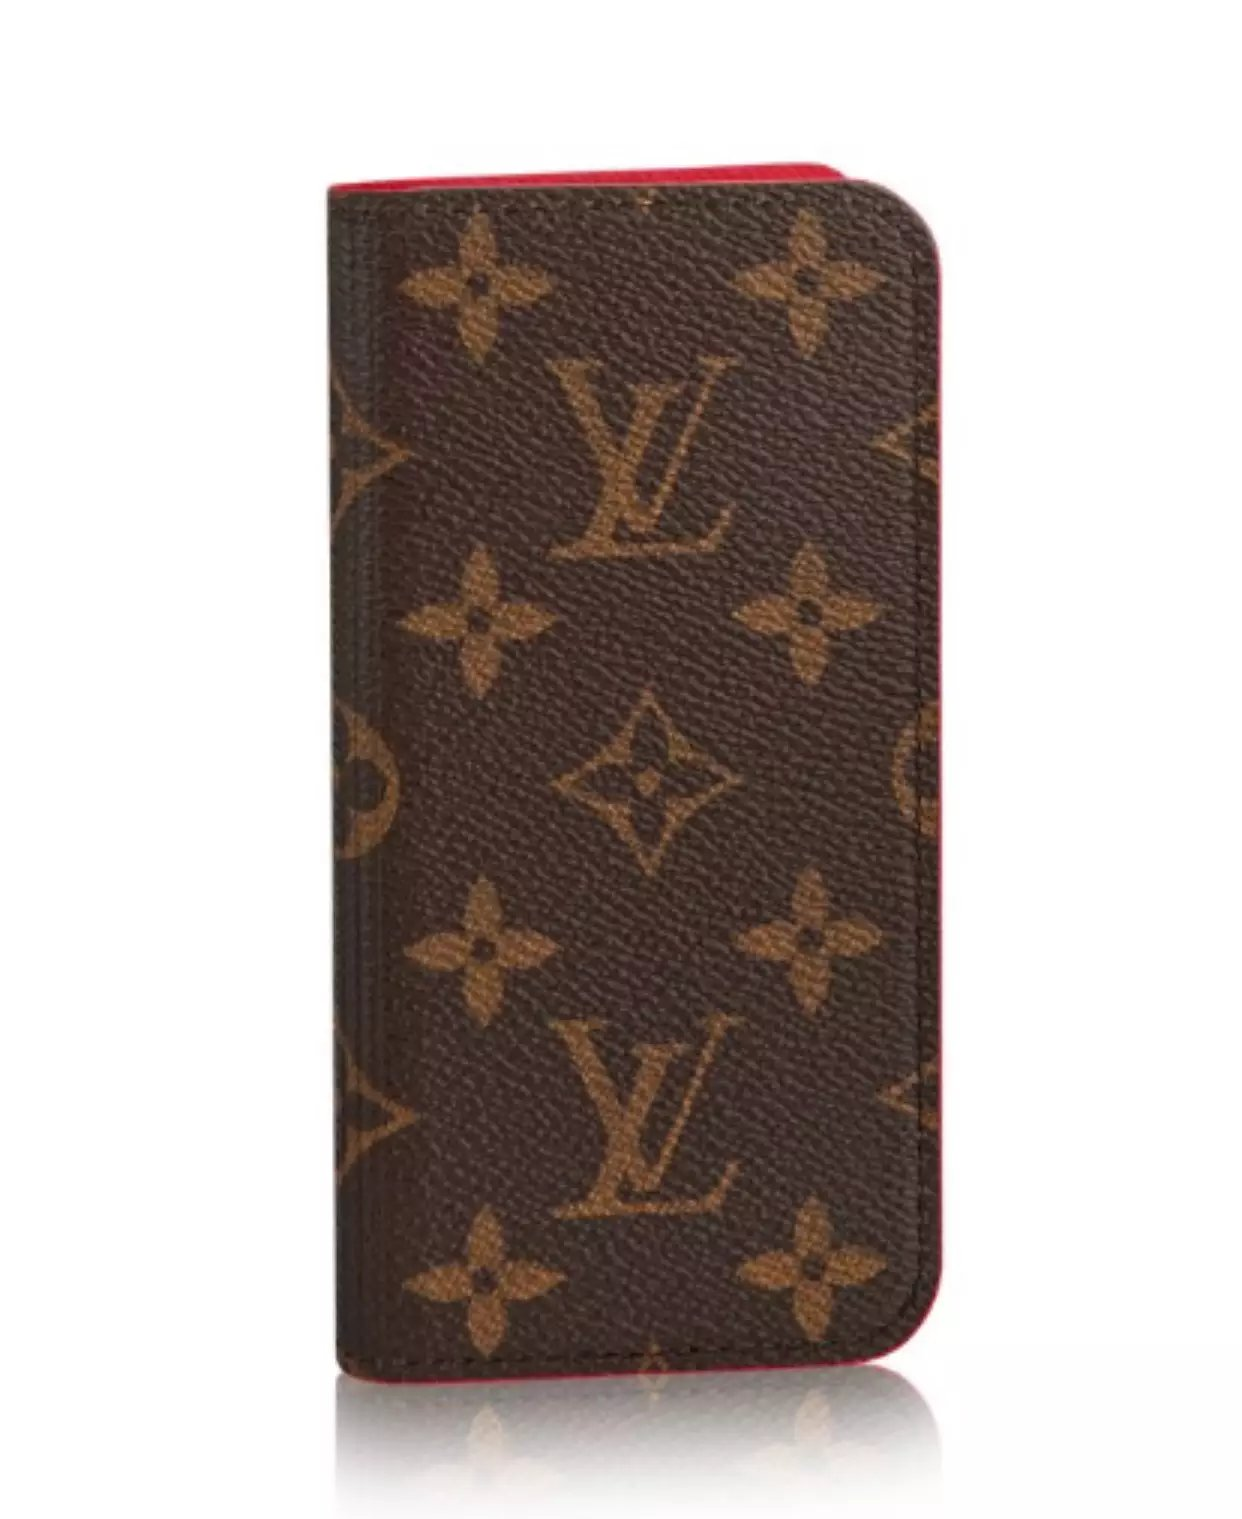 iphone 8 case best cool iphone 8 cases Louis Vuitton iphone 8 case cover for mobile what is the best iphone 8 case phone cover designer shop iphone 8 cases custom phone cases iphone 8 mobile cover shopping